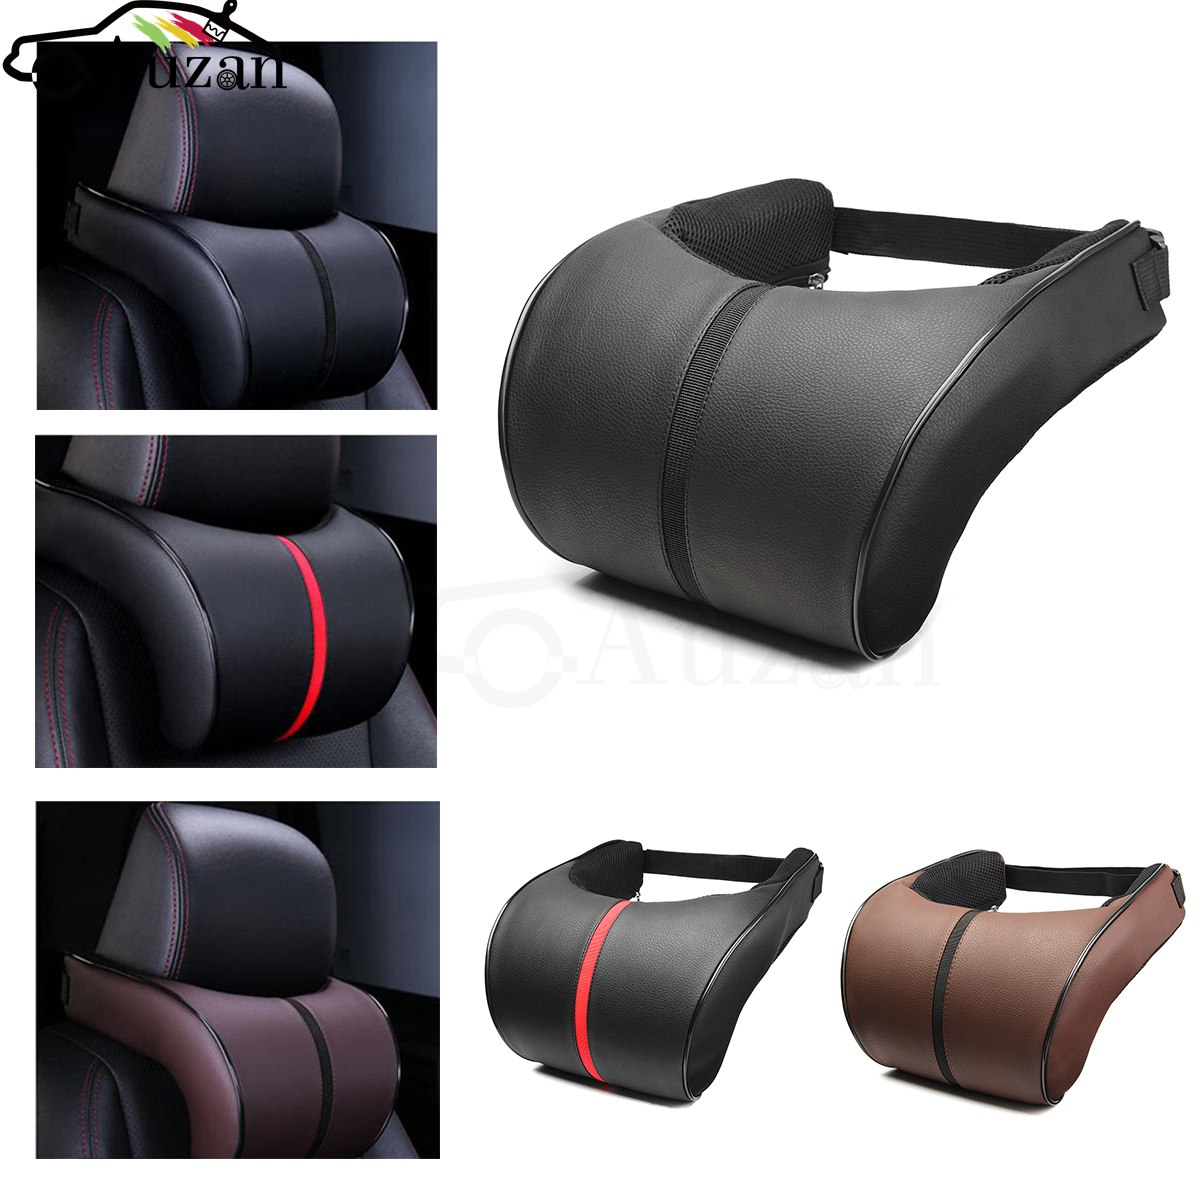 pu leather car auto seat neck pillow memory foam head neck rest headrest cushion in neck pillow. Black Bedroom Furniture Sets. Home Design Ideas